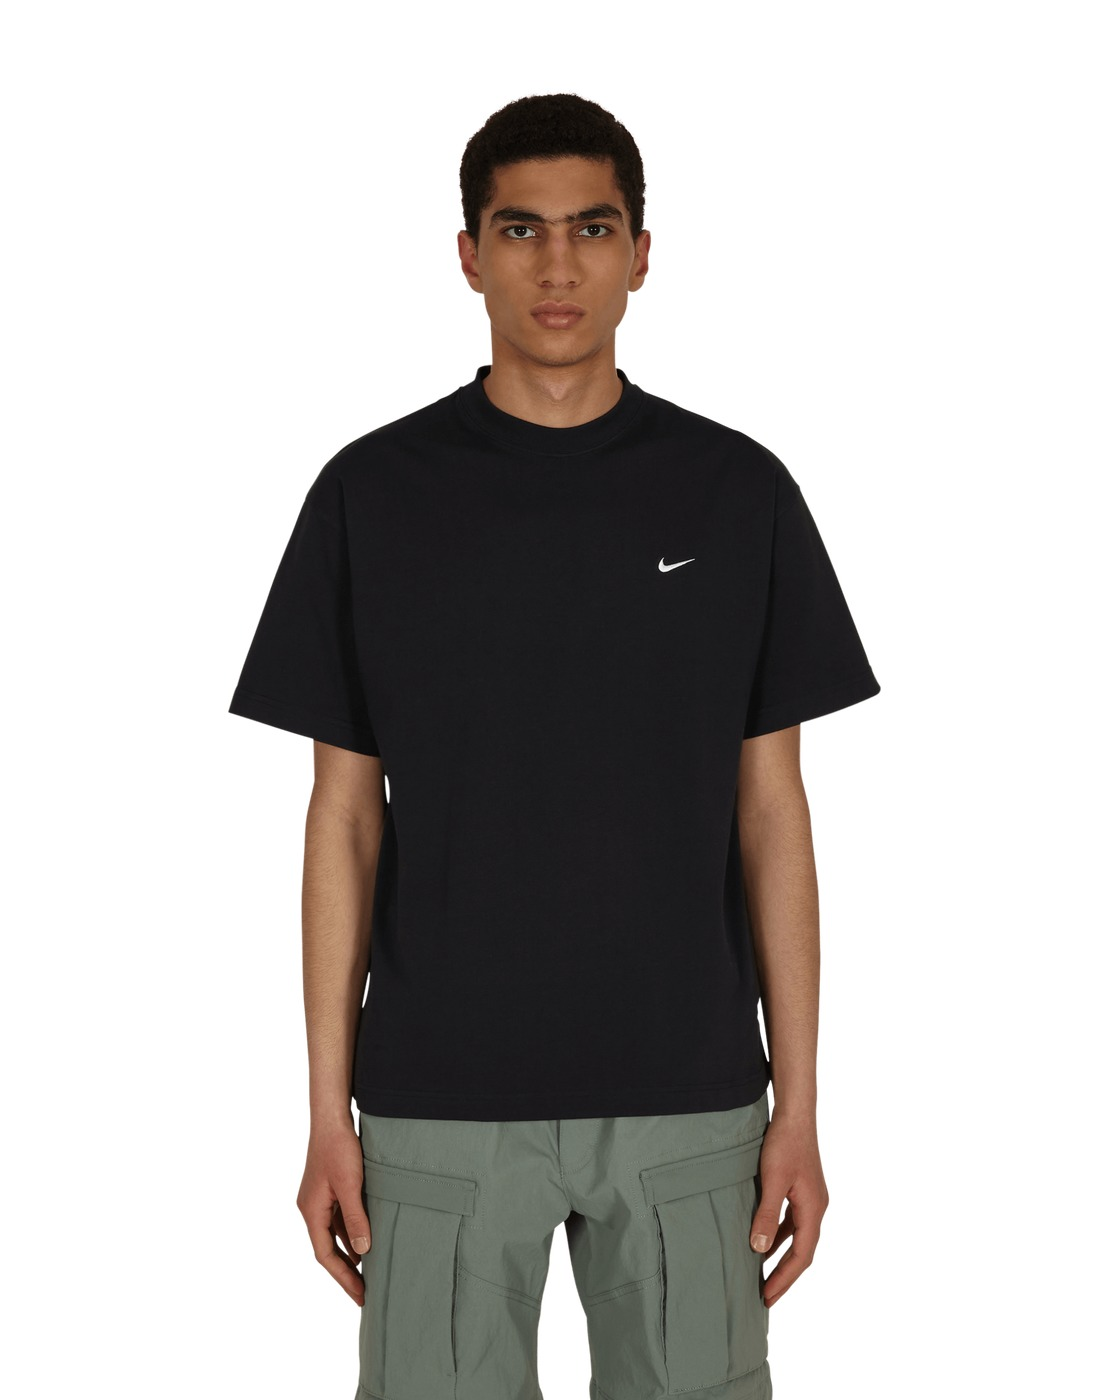 Nike Special Project Essential T Shirt Black/White